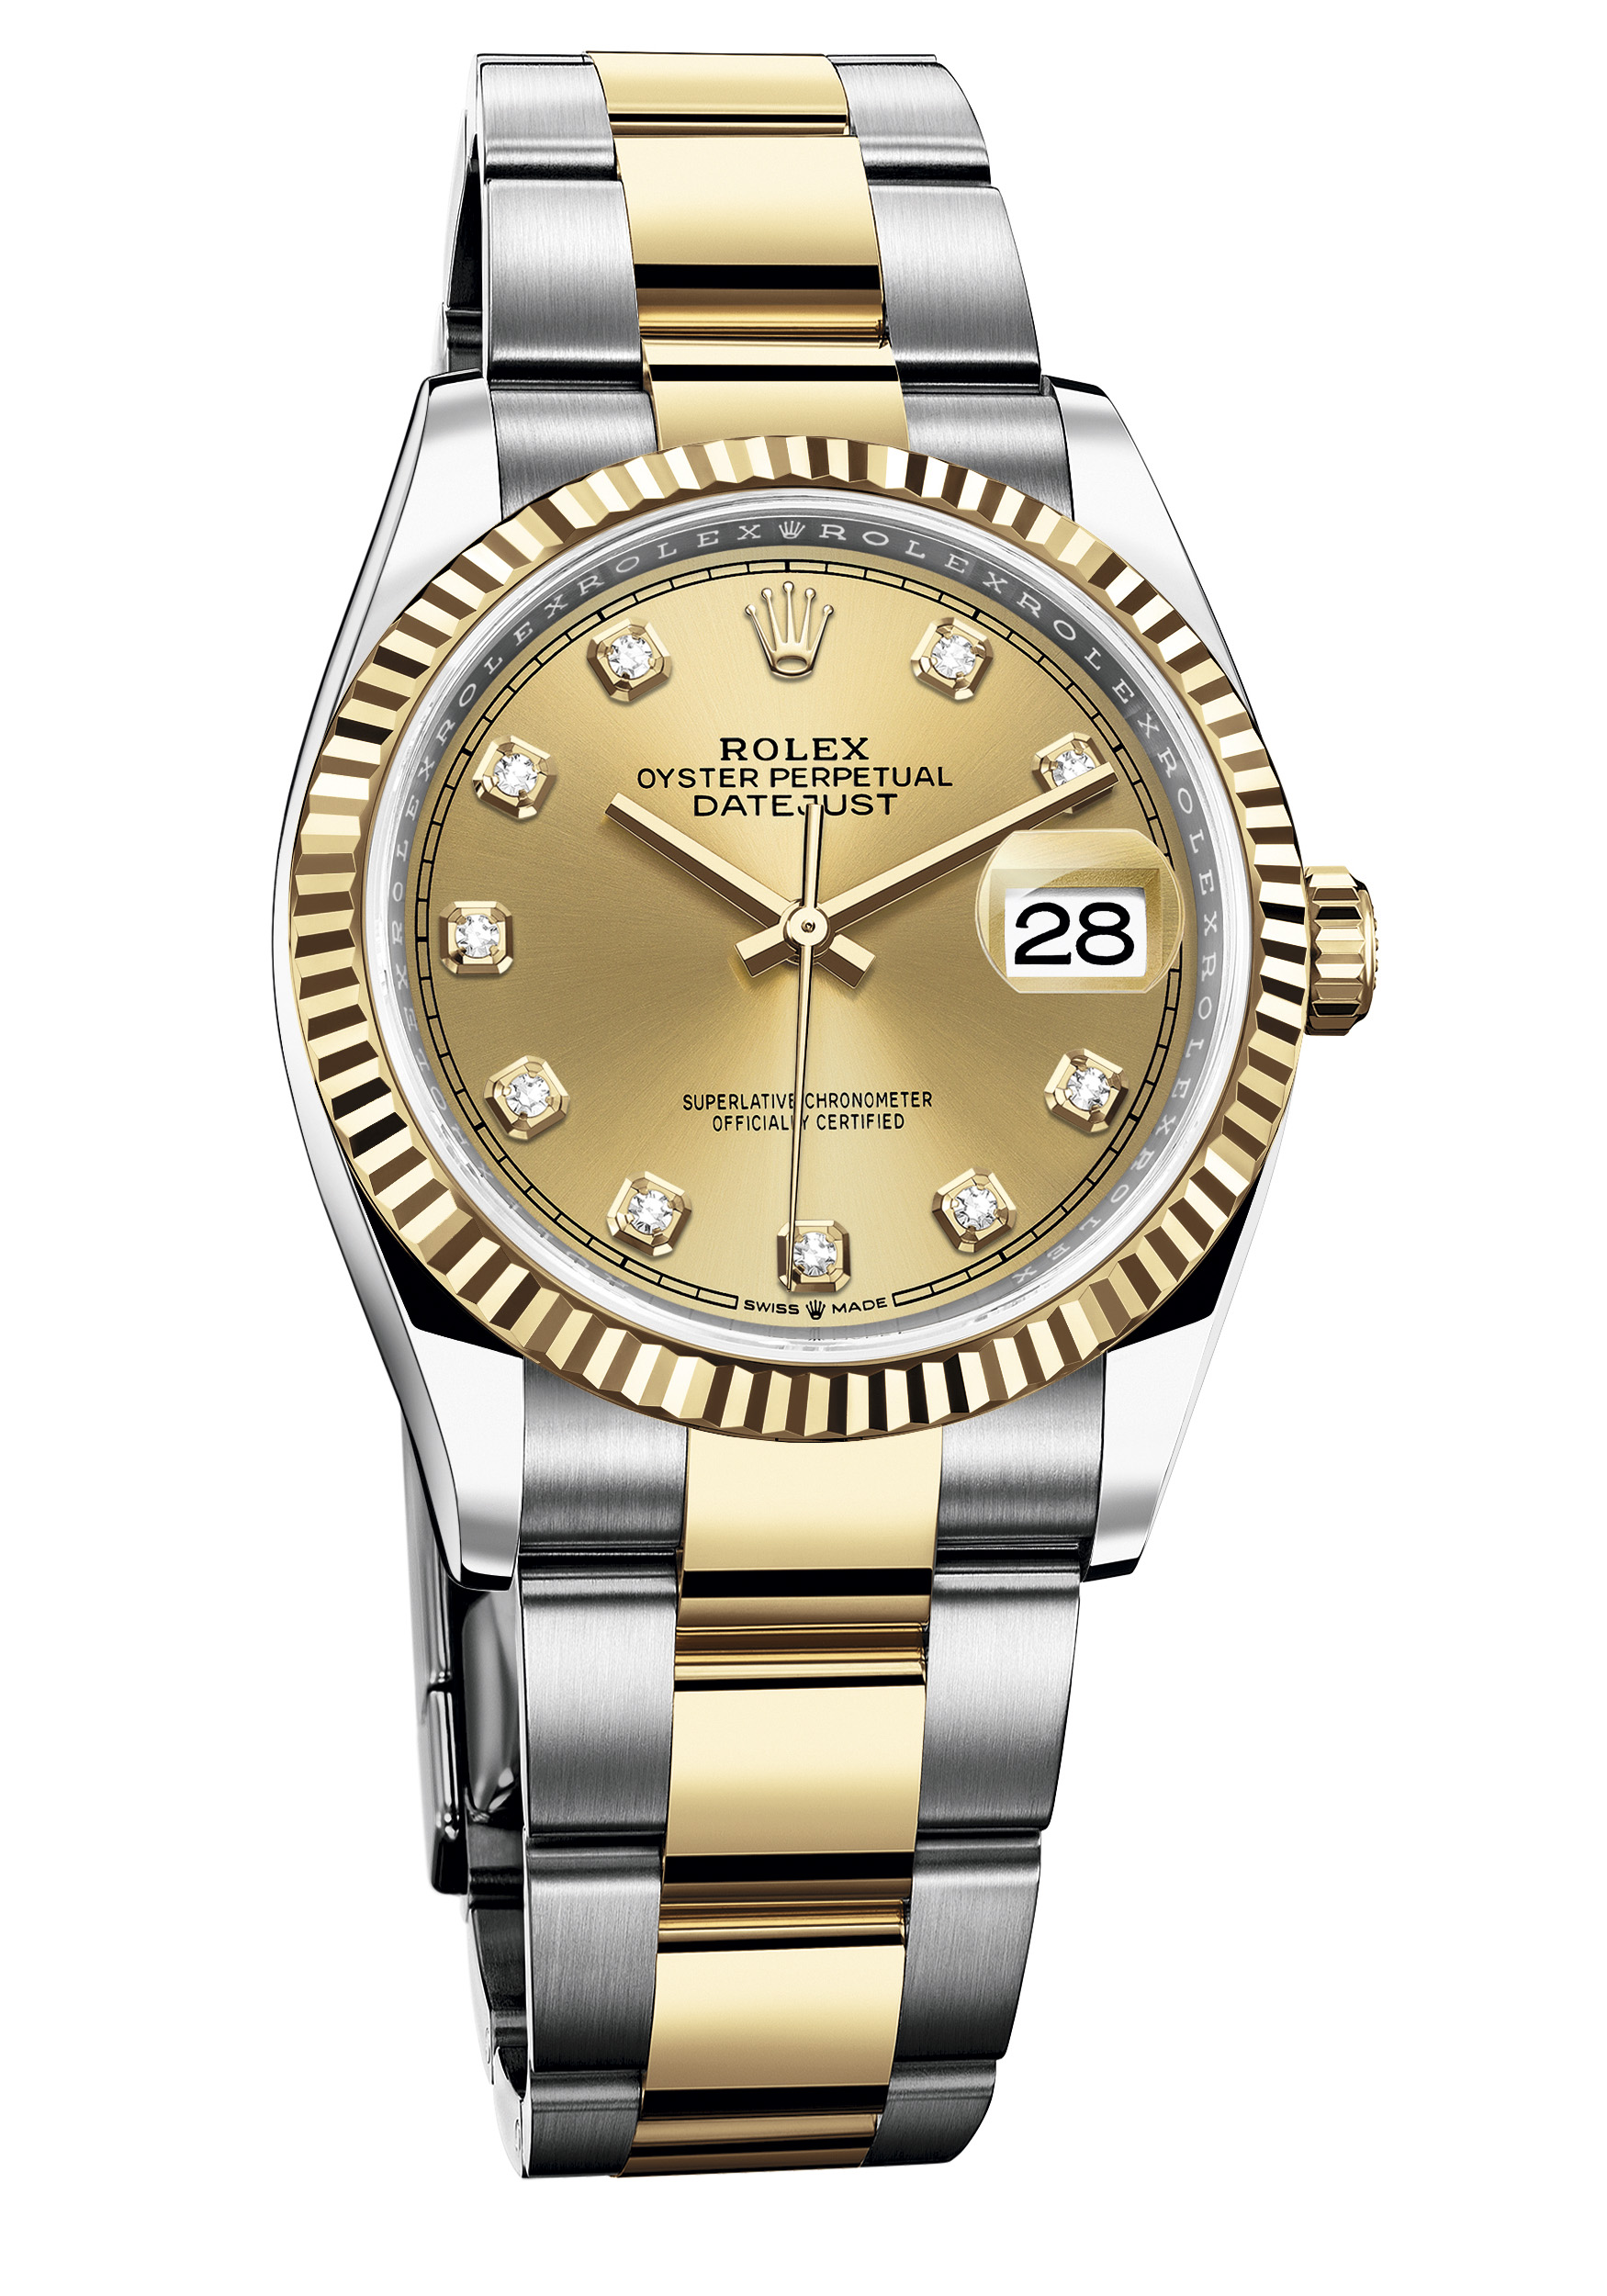 Rolex Oyster Perpetual Datejust 36